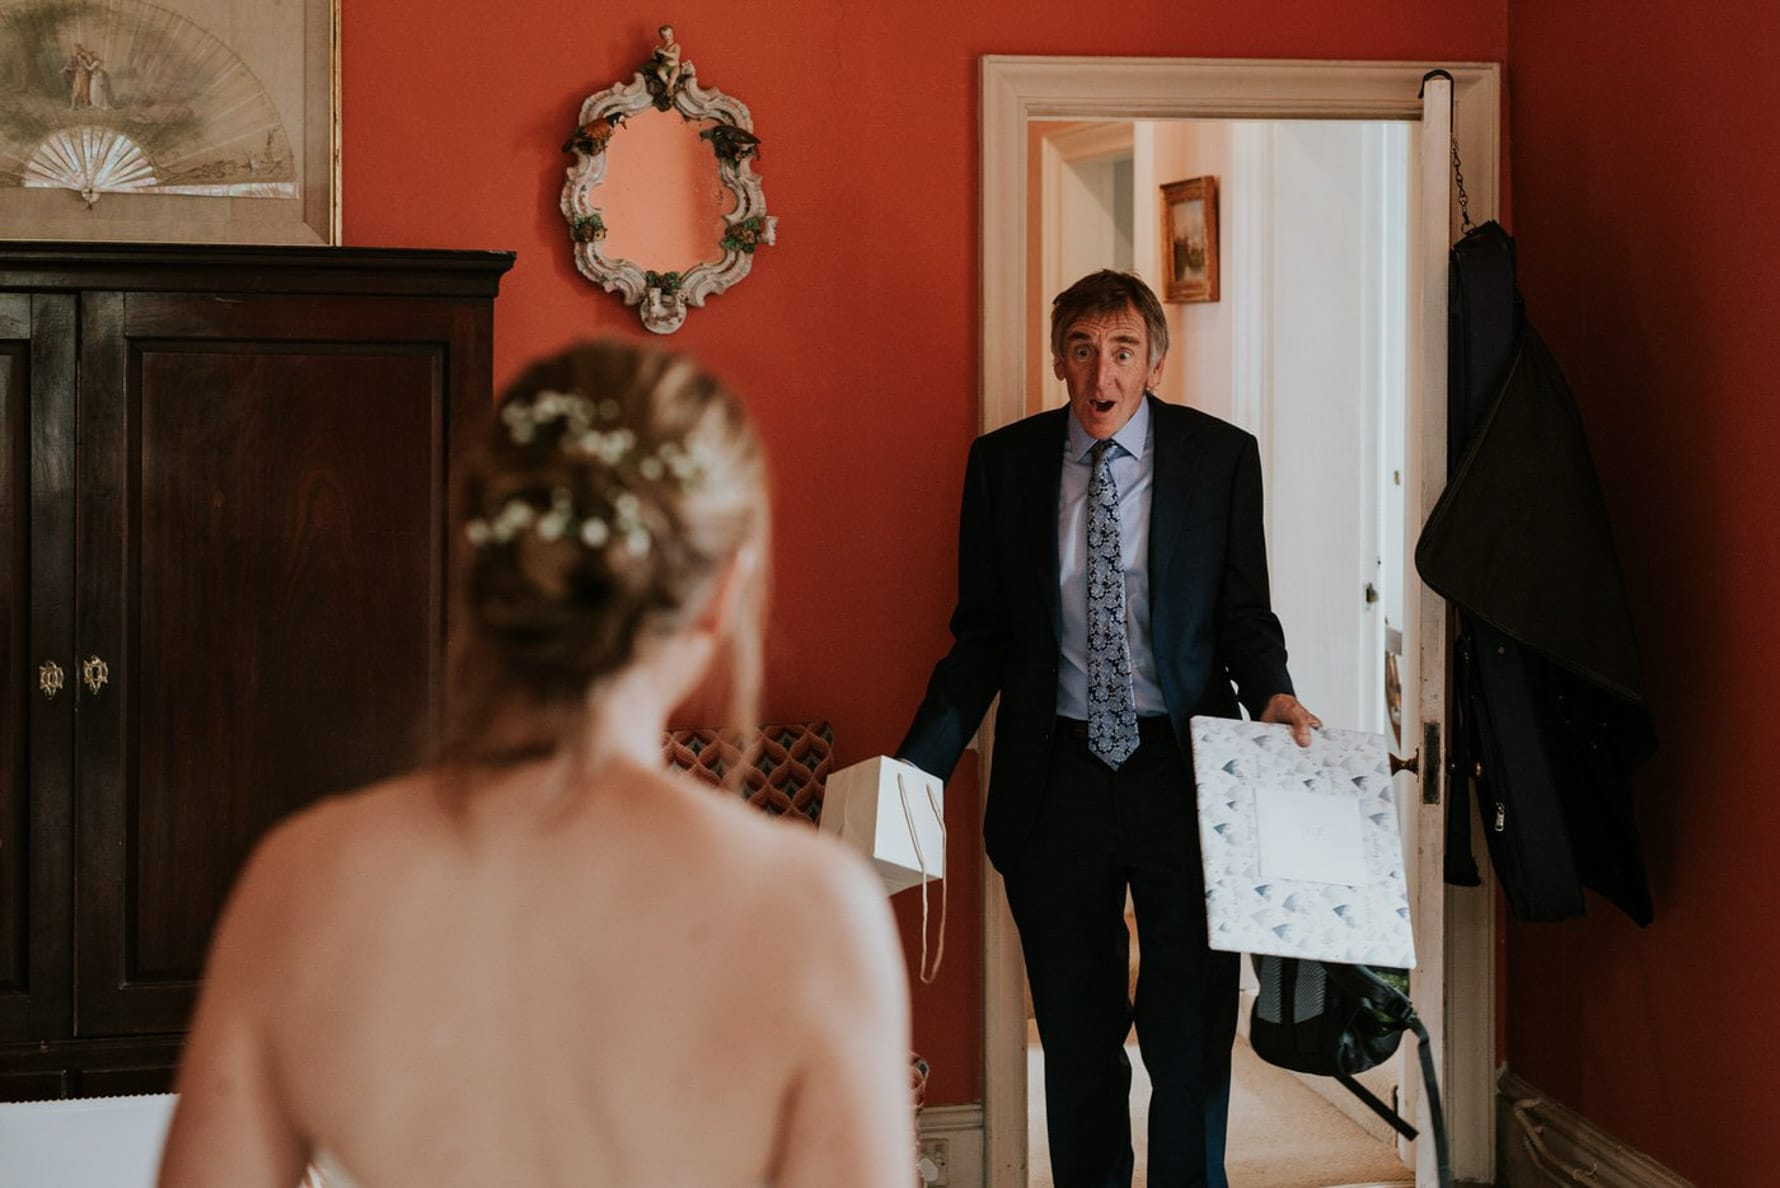 Father of the bride reacting to seeing his daughter